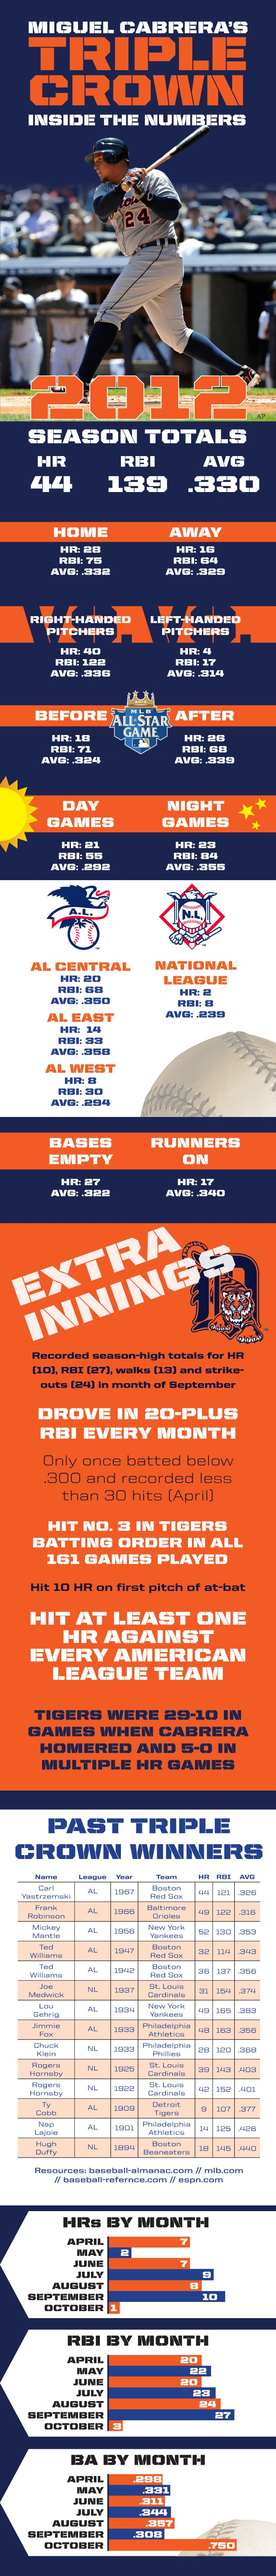 MLB 2012 > Miguel Cabrera Triple Crown Infographic - STACK